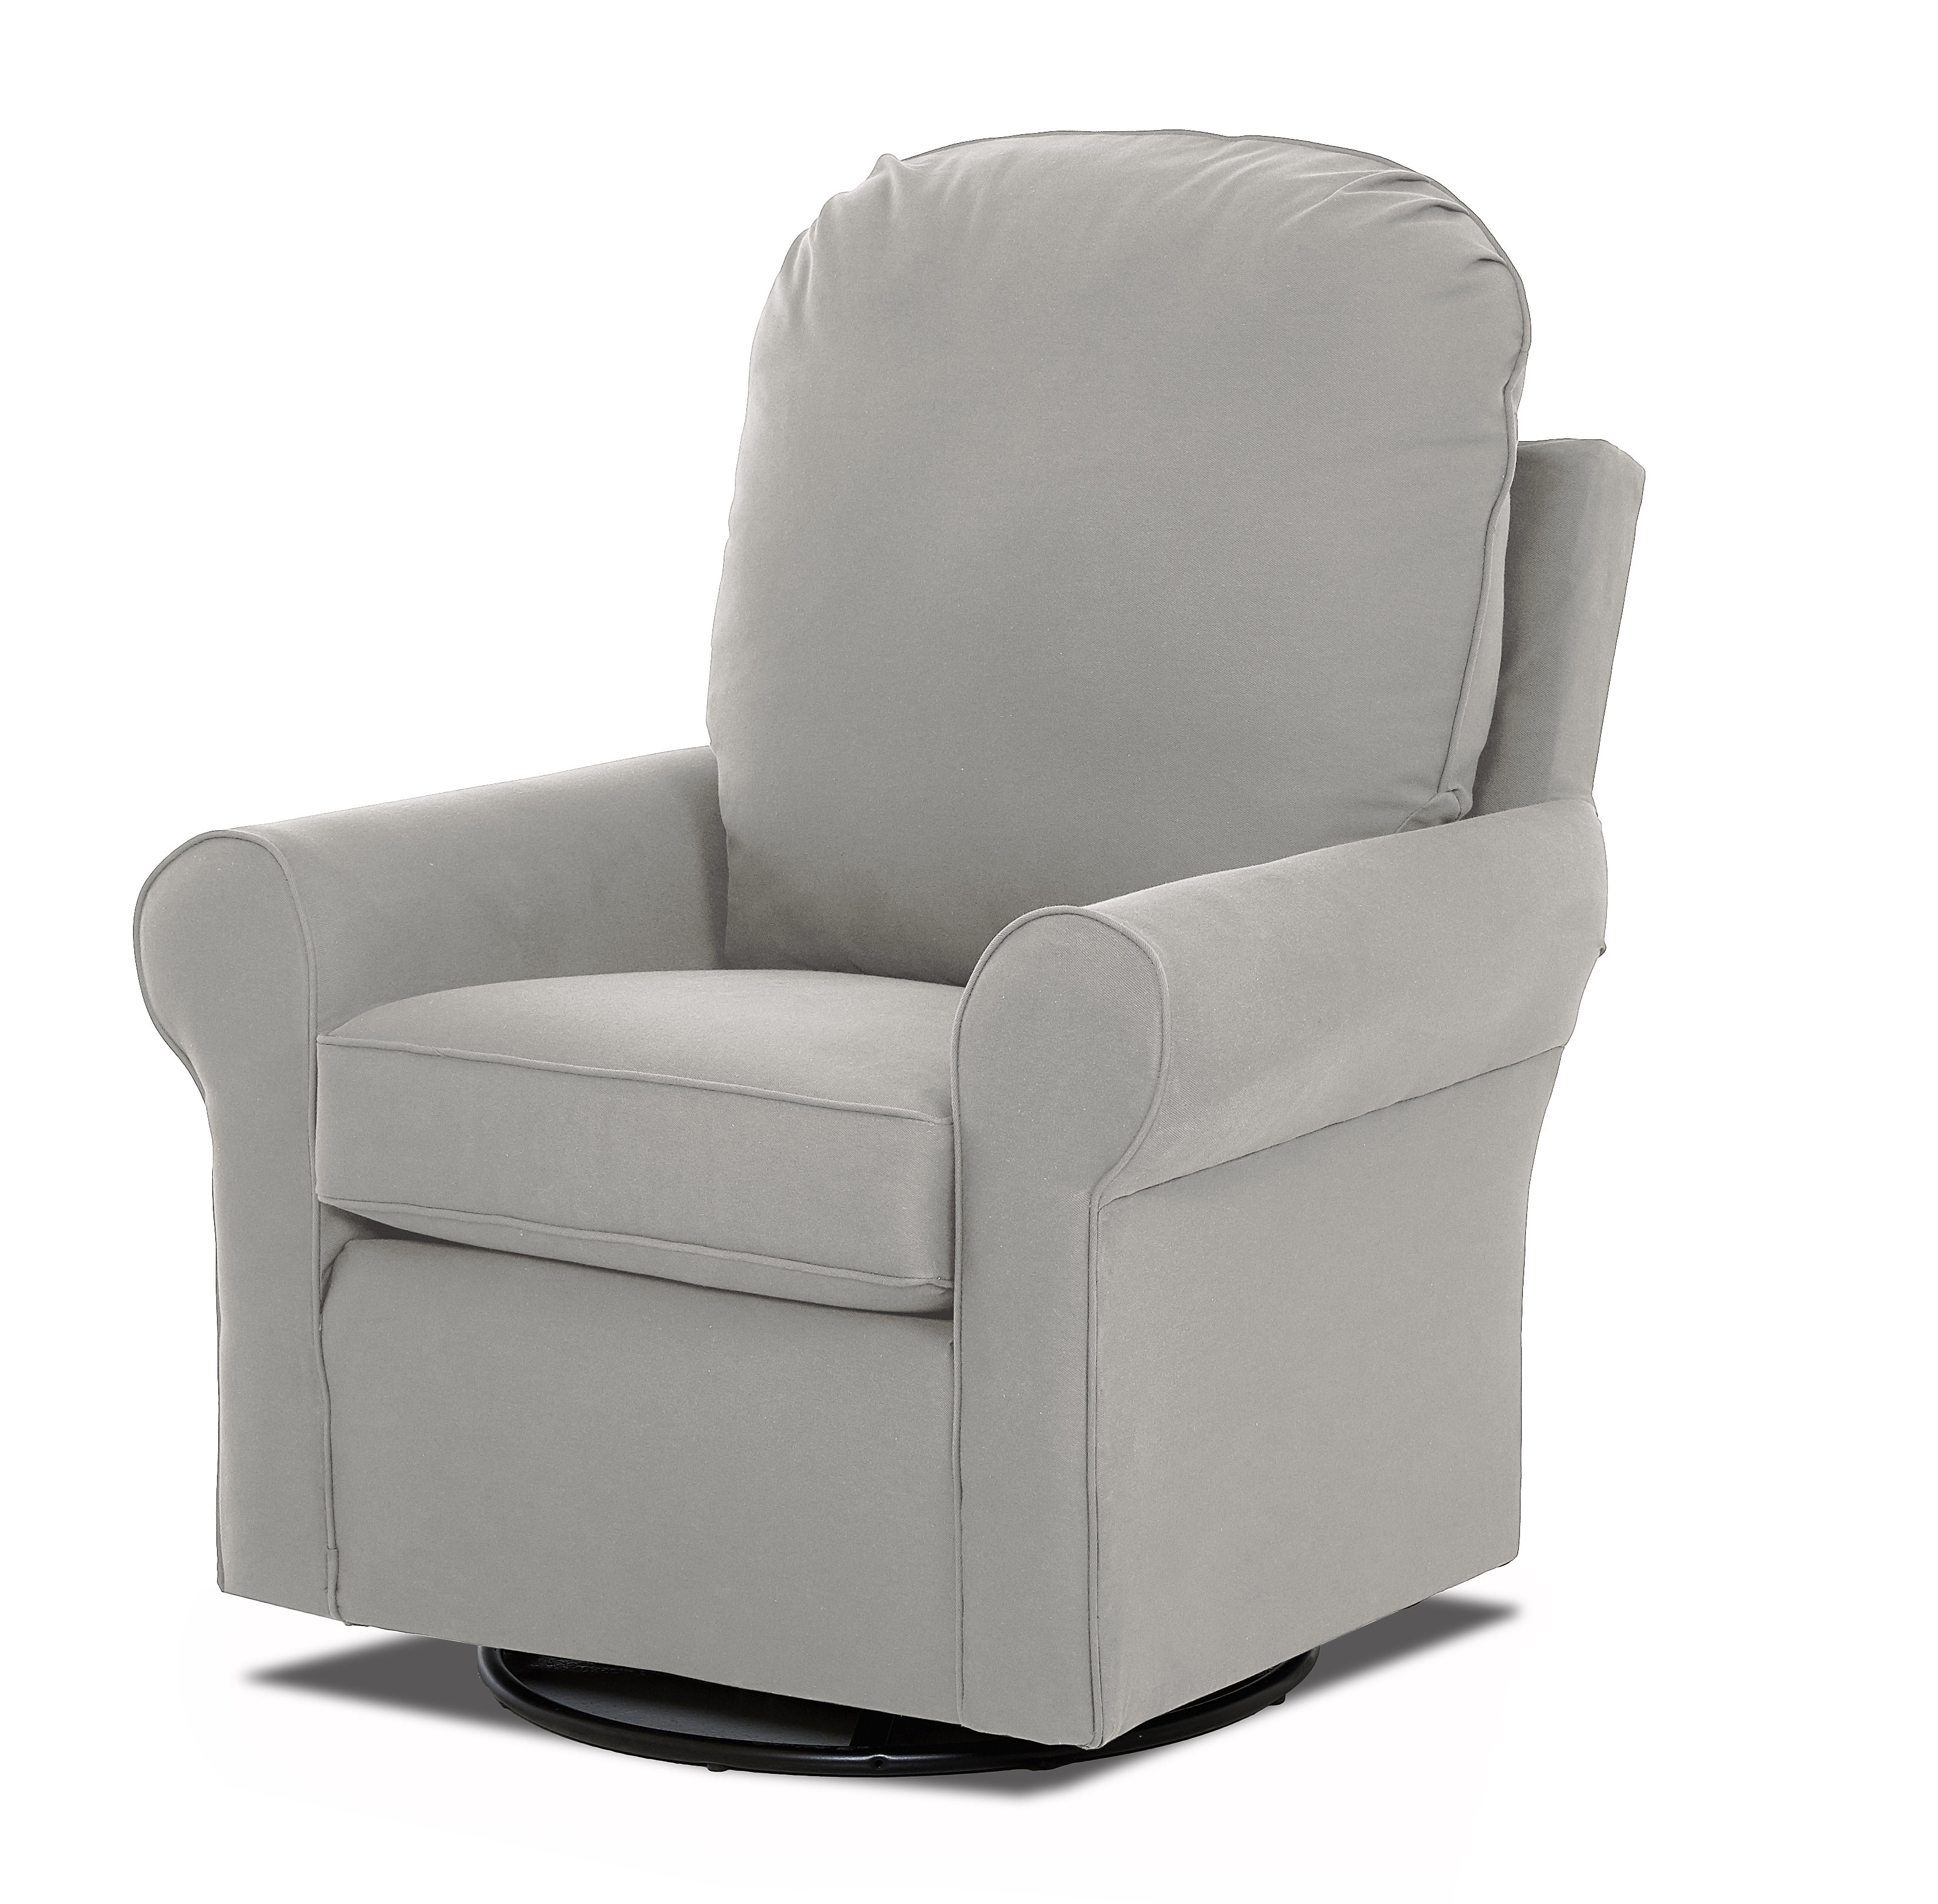 Best And Newest Klaussner Furniture Suffolk Swivel Glider (View 7 of 20)